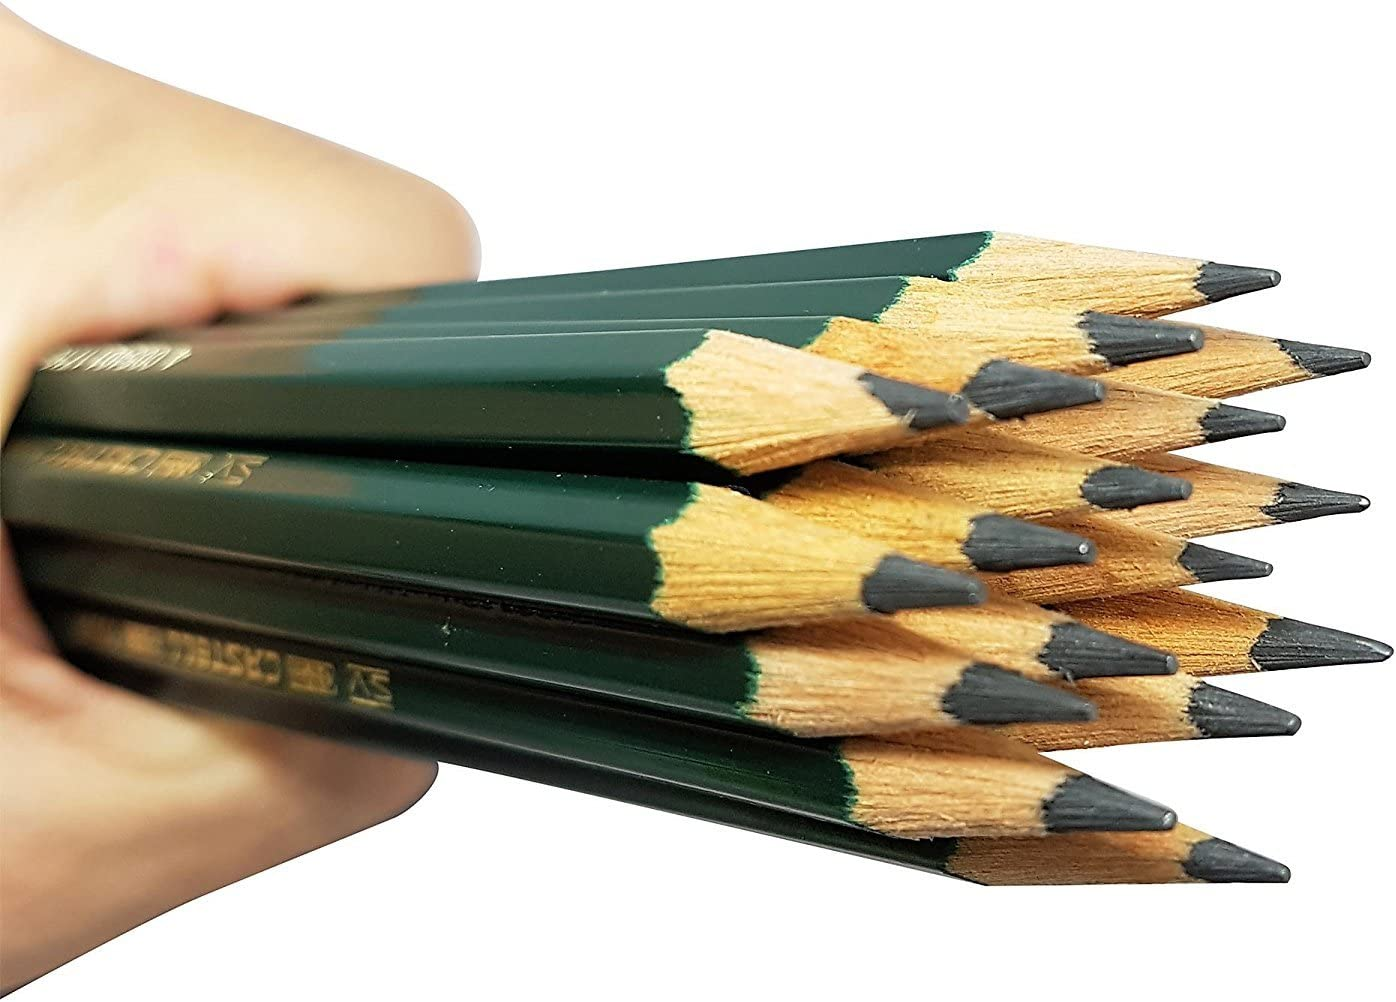 Faber-Castell Pencils sketch HB No.2 Pencil for drawing HB writing artist shading 12 pack Castell 9000 Art graphite pencils school supplies pencils